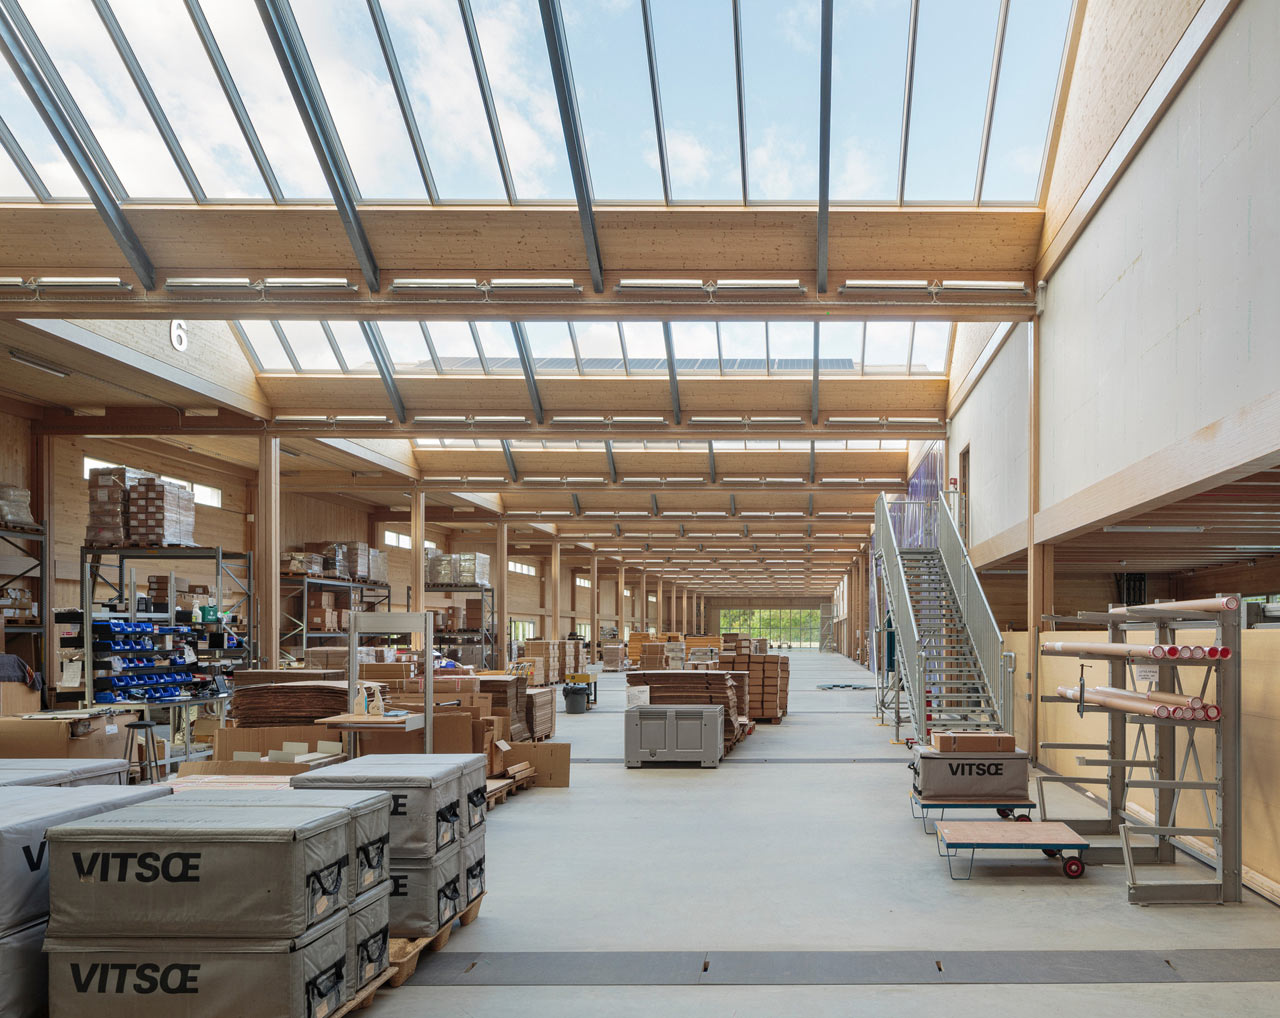 Vitsoe-Royal-Leamington-Spa-HQ-10